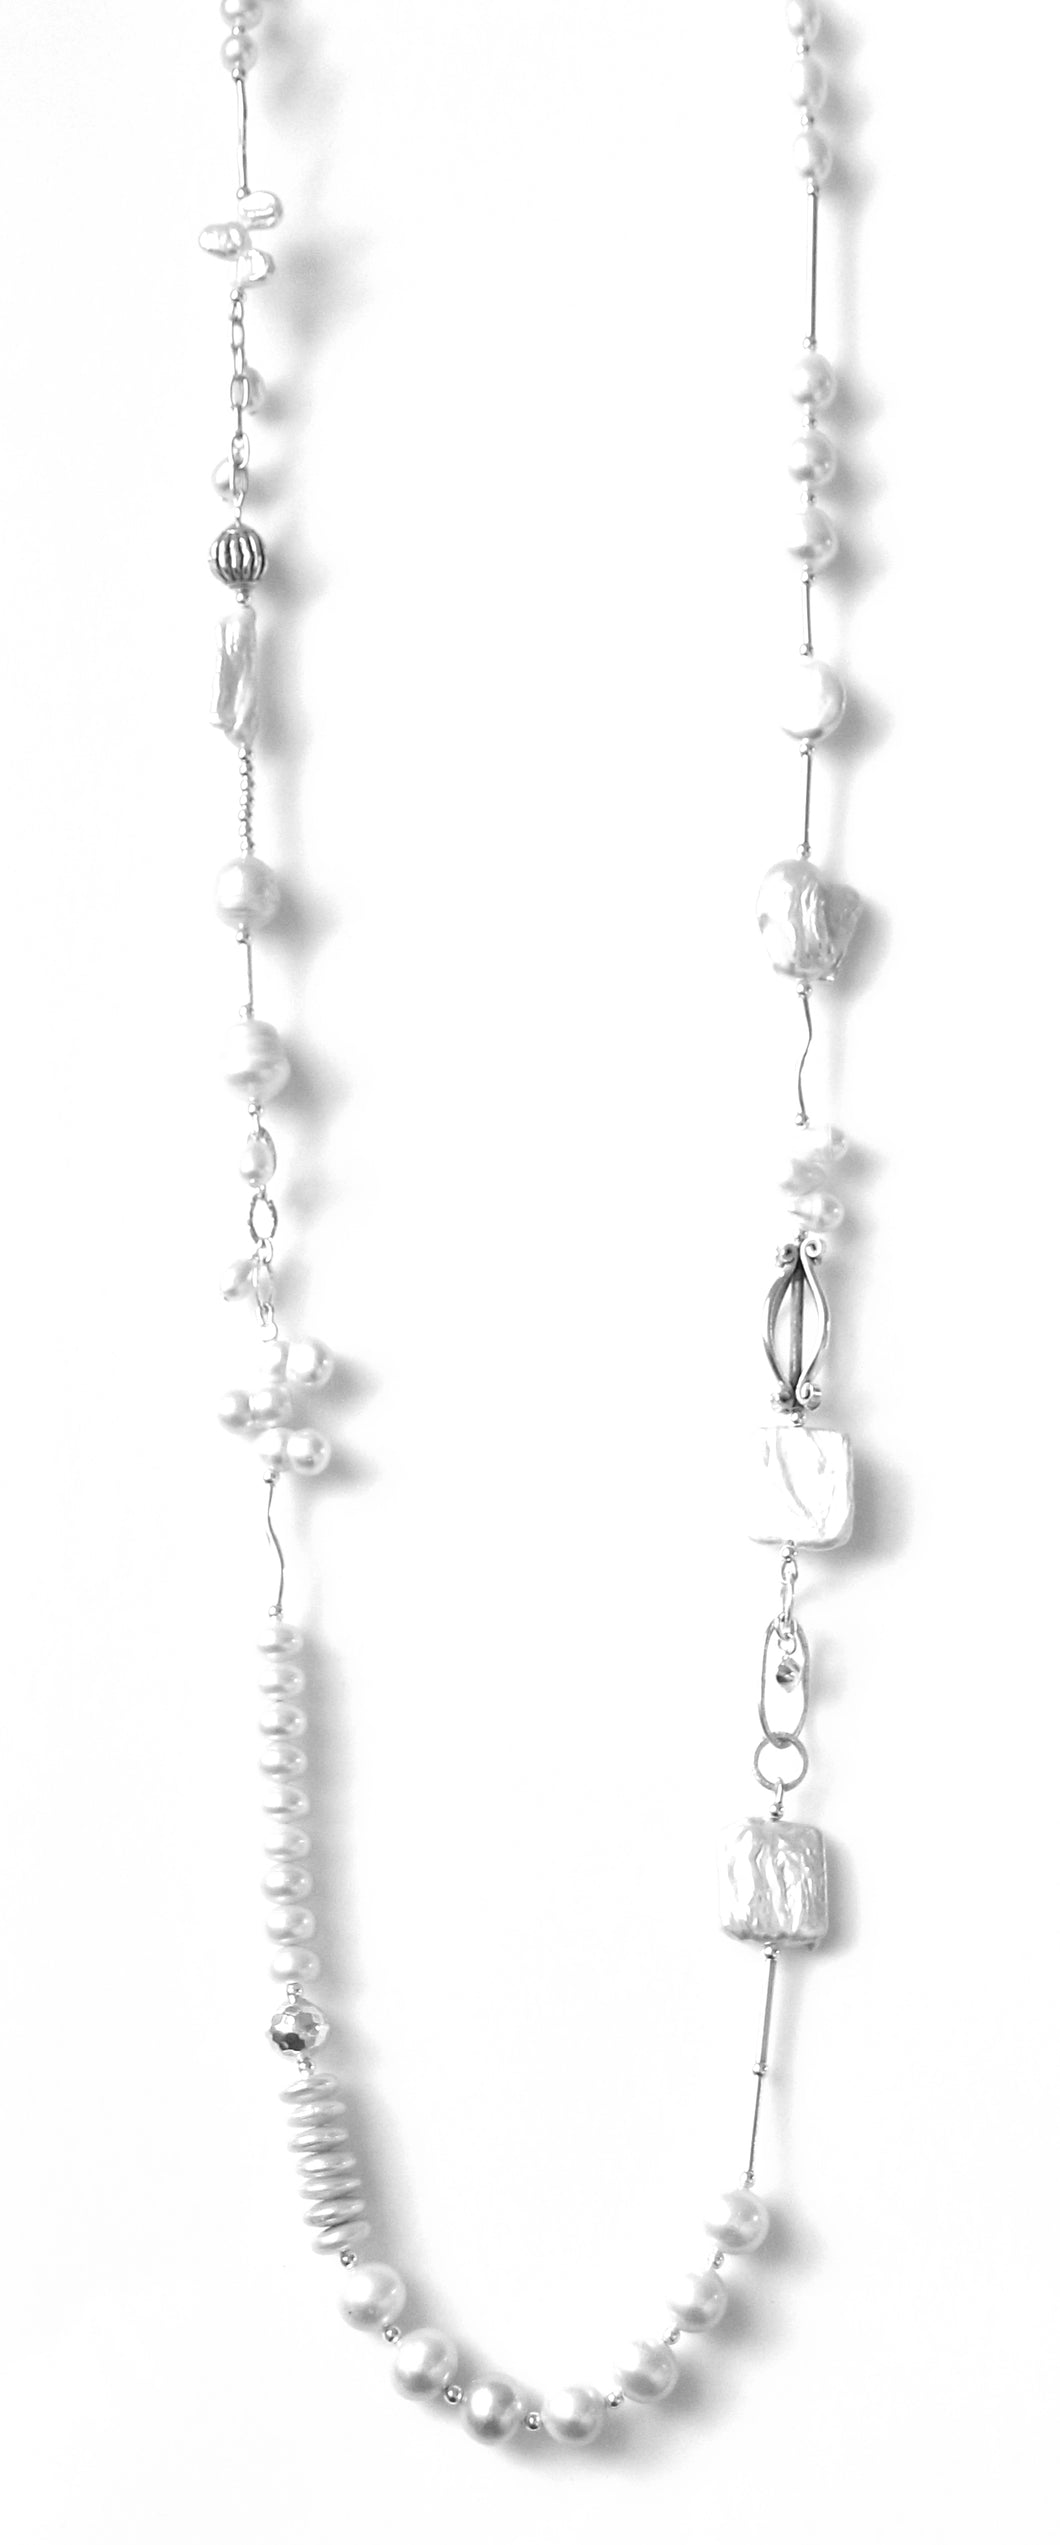 Australian Handmade White Pearl Necklace with Variegated Shaped Pearls and Sterling Silver